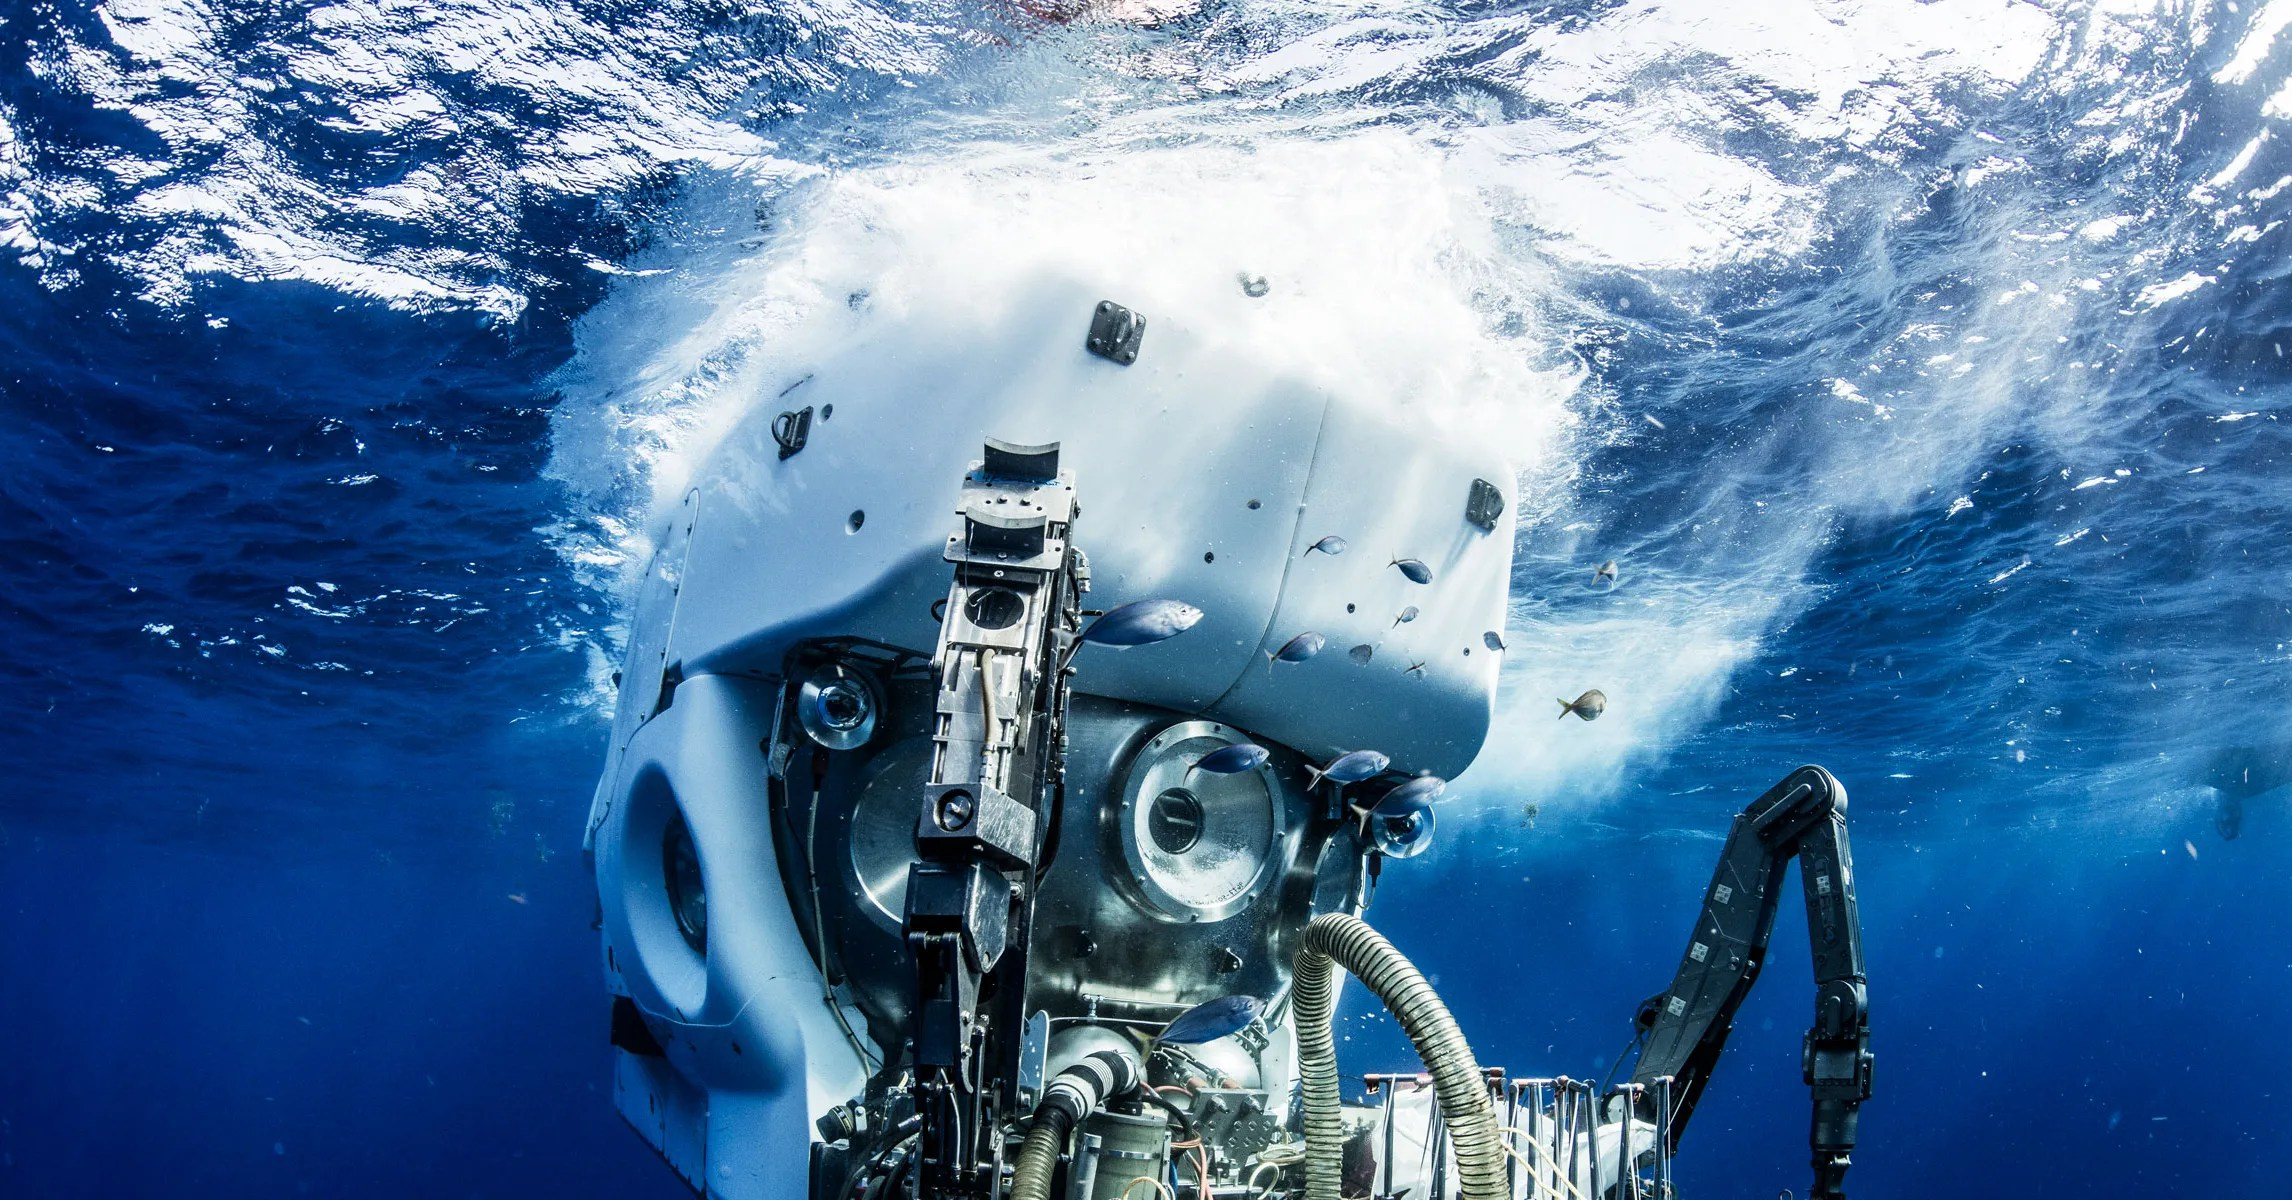 Offers deep sea fishing, private boat charters, and whale watching and sightseeing tours. The Oldest Crewed Deep Sea Submarine Just Got A Big Makeover Wired